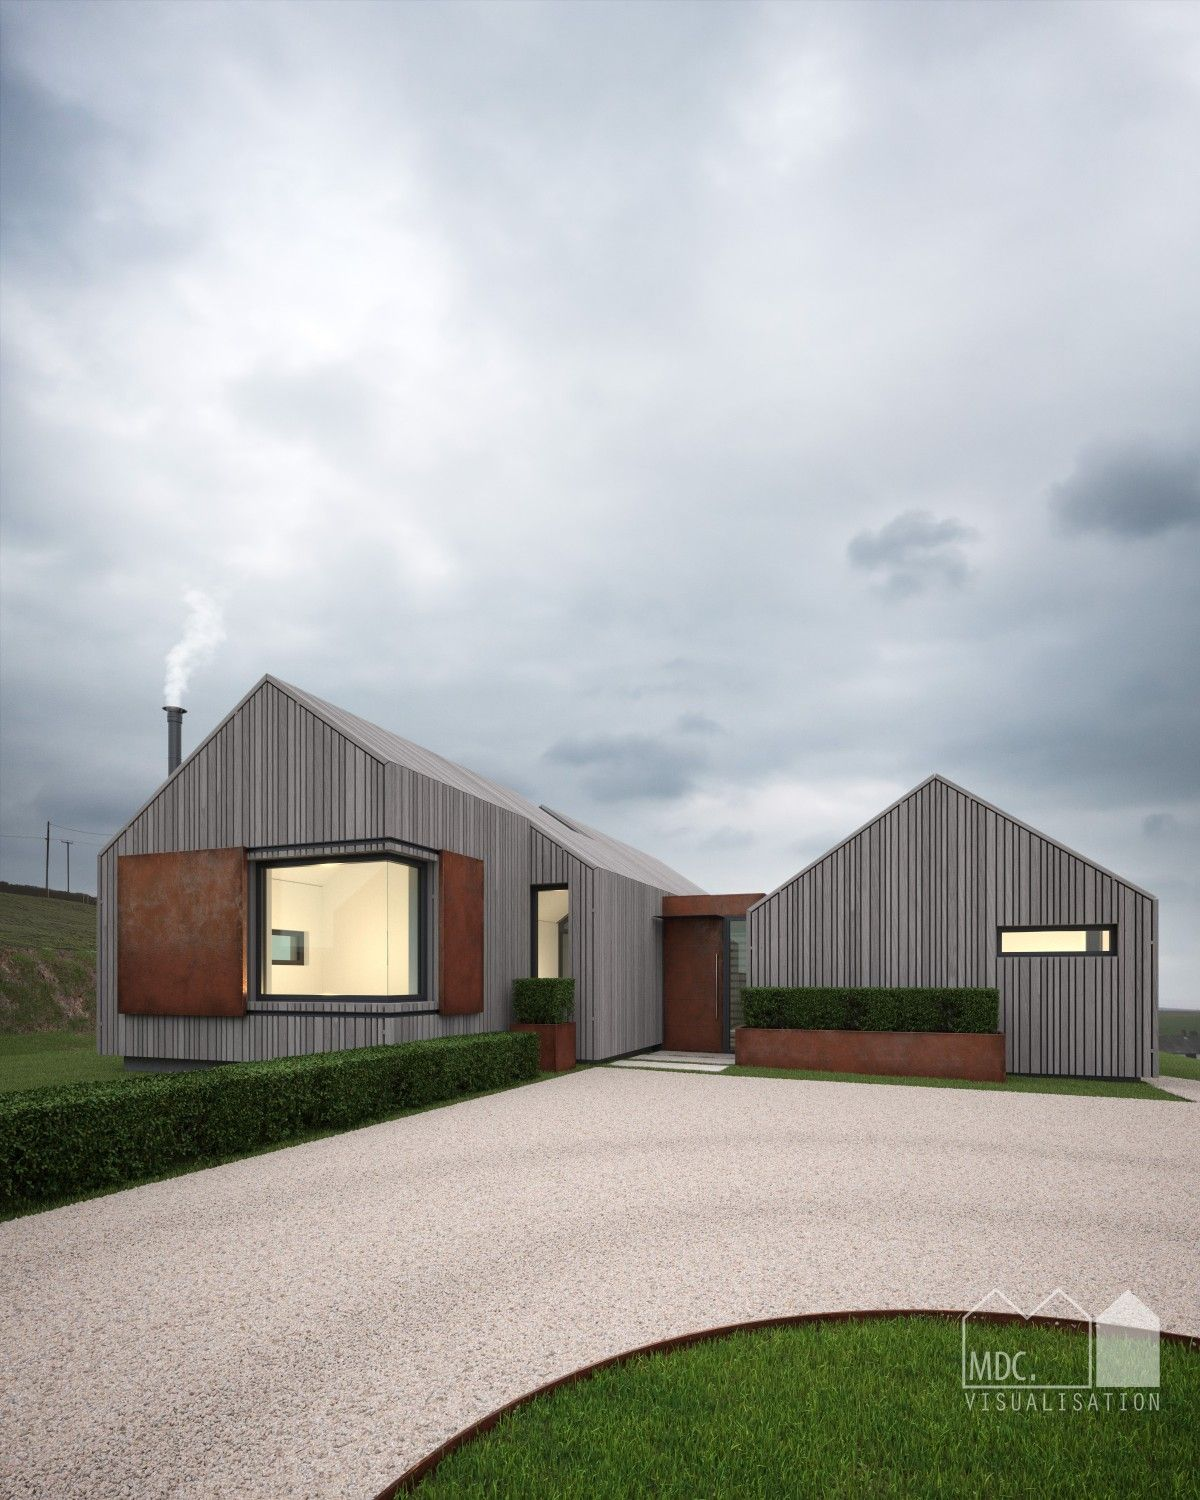 Home Design Ideas Architecture: Eddisbury Barns - Annabelle Tugby